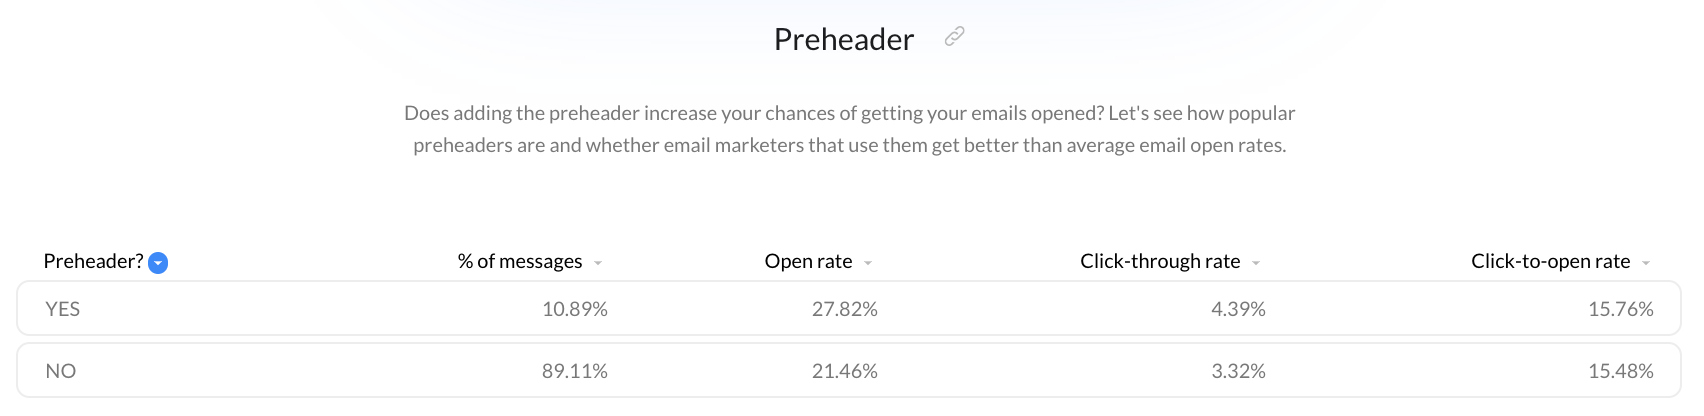 The impact of including a preheader in emails based on the Email Marketing Benchmarks report data.